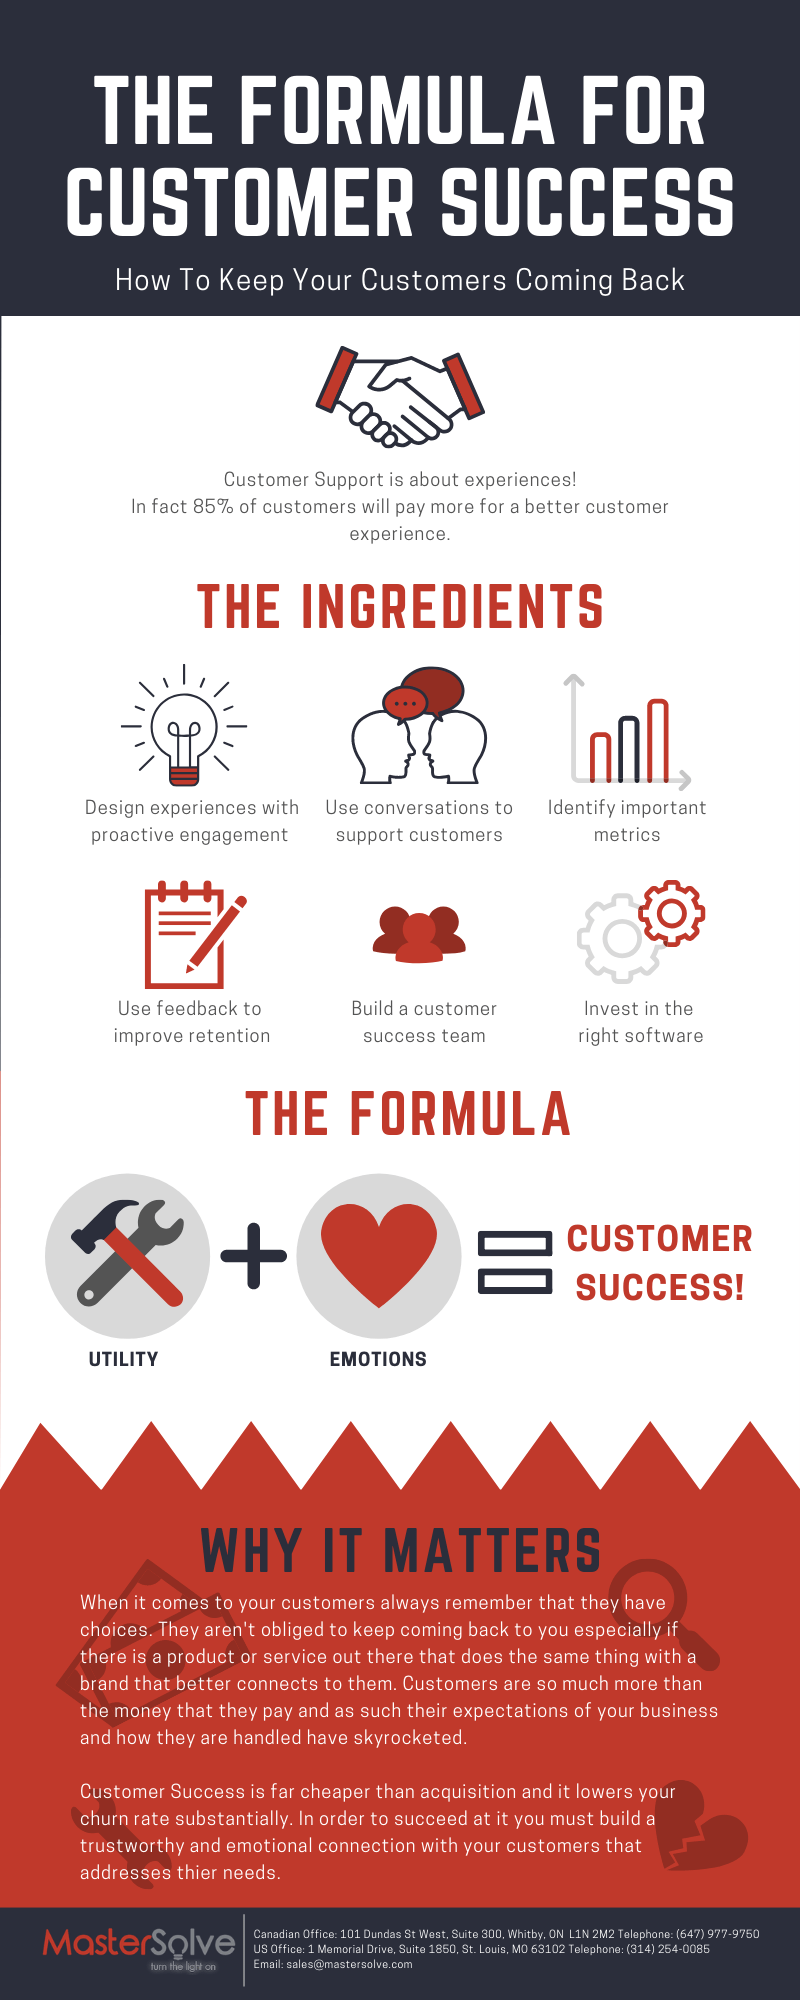 Customer Success Formula – How To Keep Your Customers Coming Back